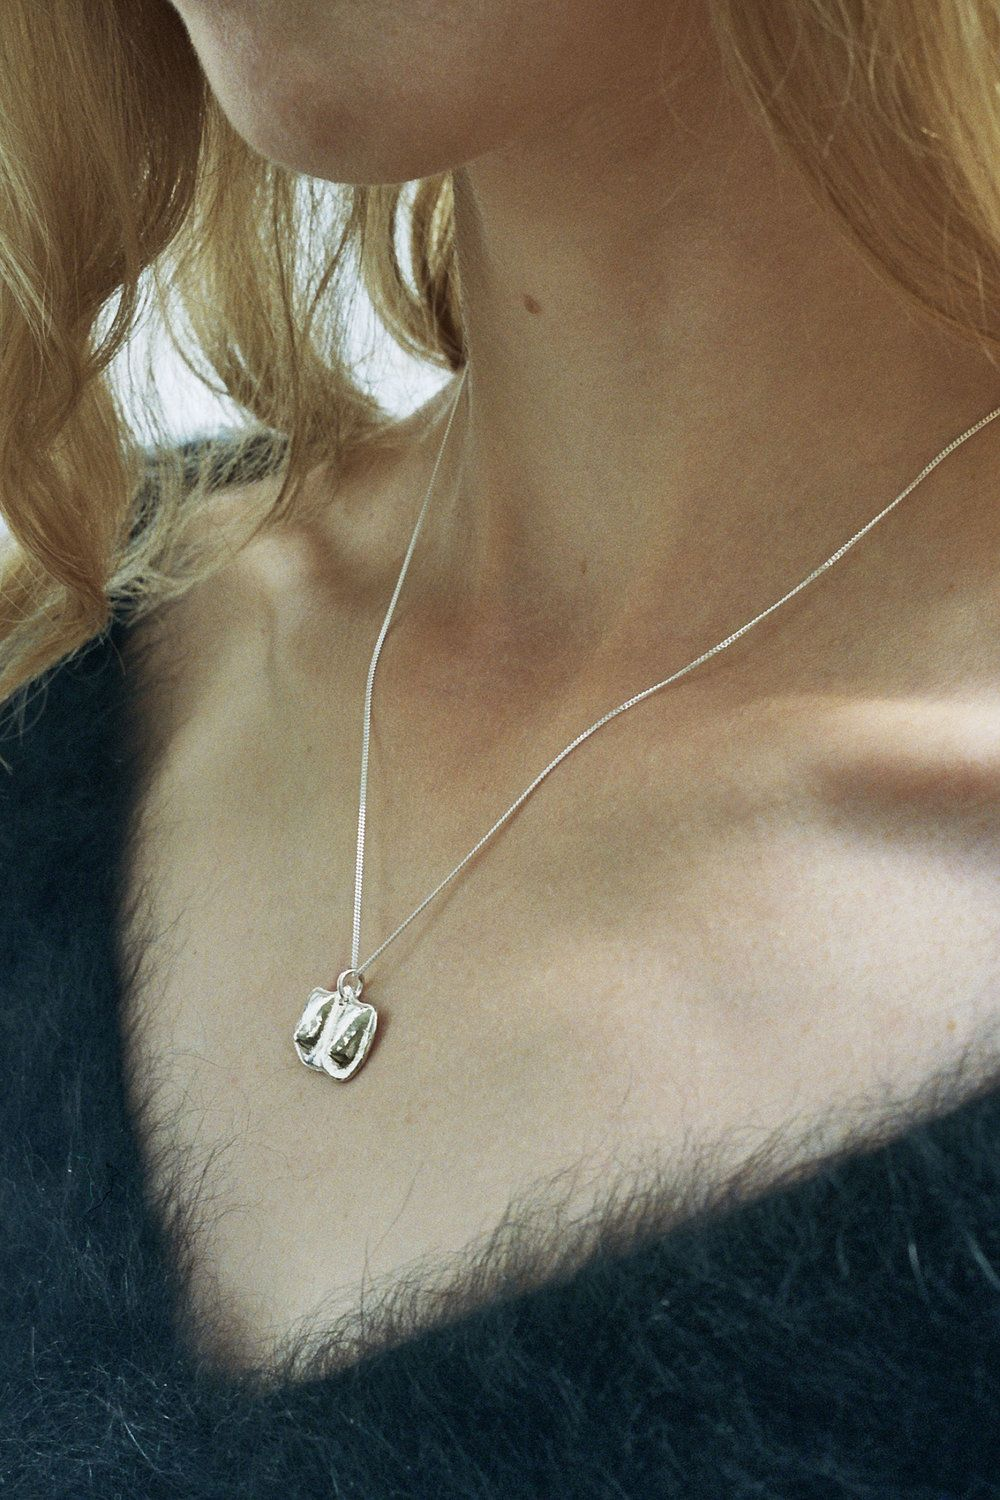 By SP is a collection of silver jewellery by Sadie Perry. https://www.by-sp.com/shop-2/necklace-001